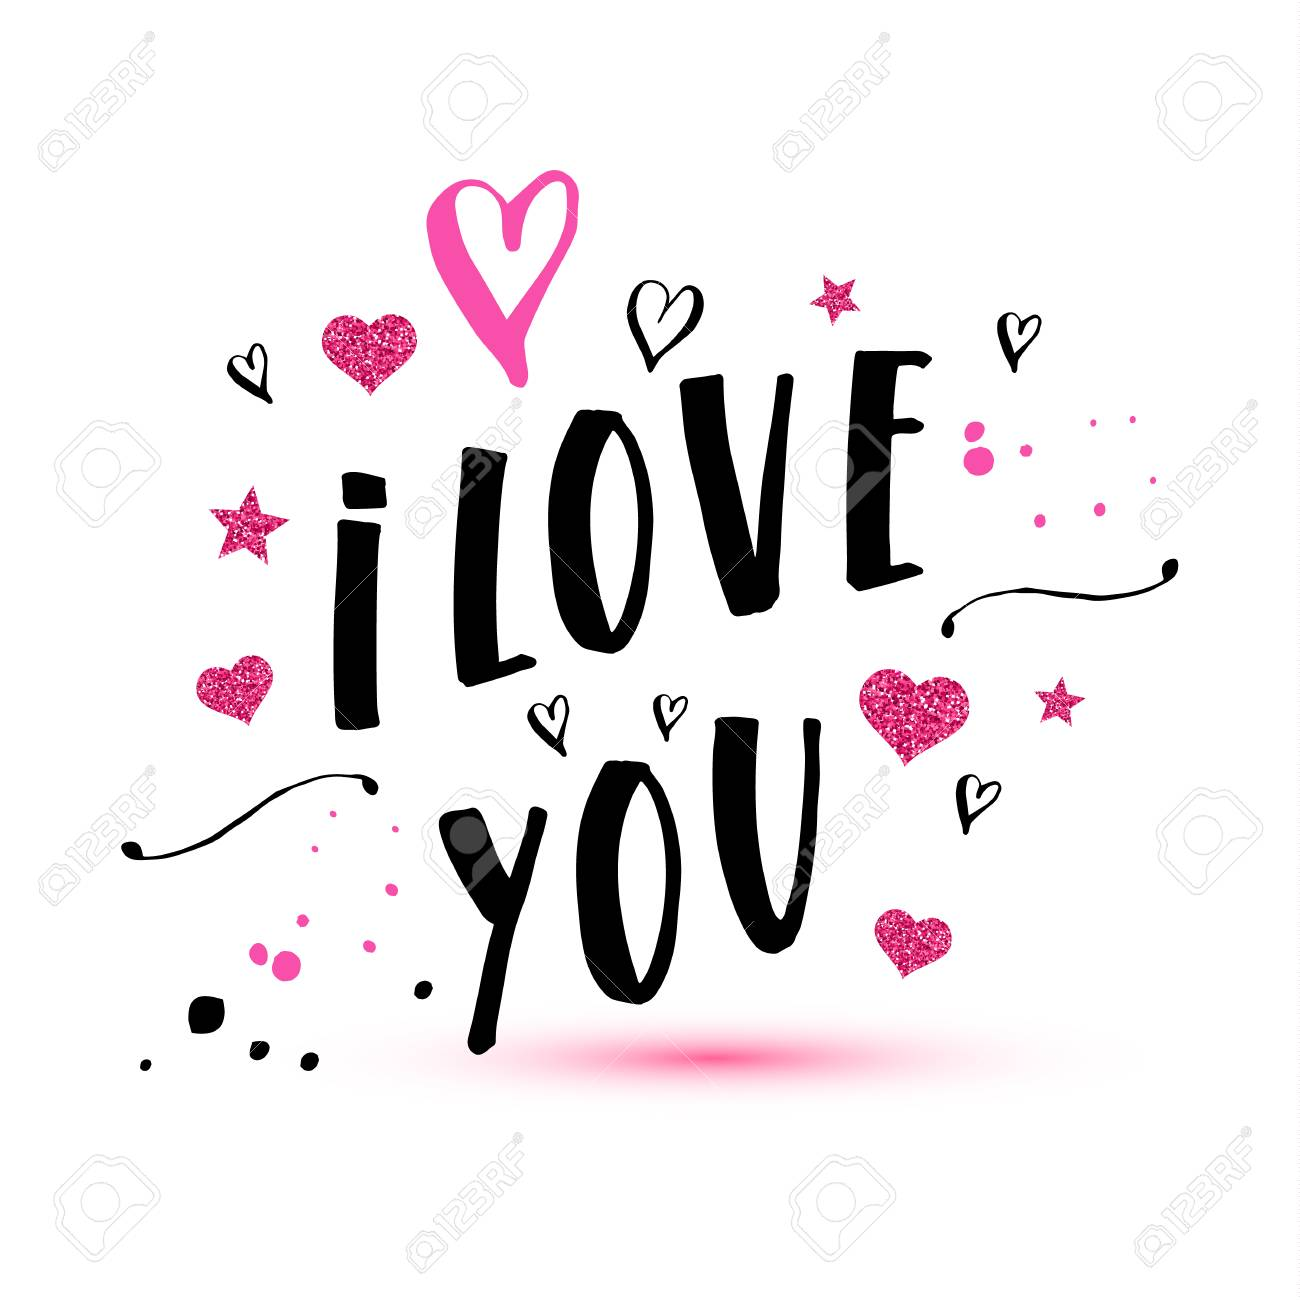 I love you text of valentines day background illustration. - 96524130